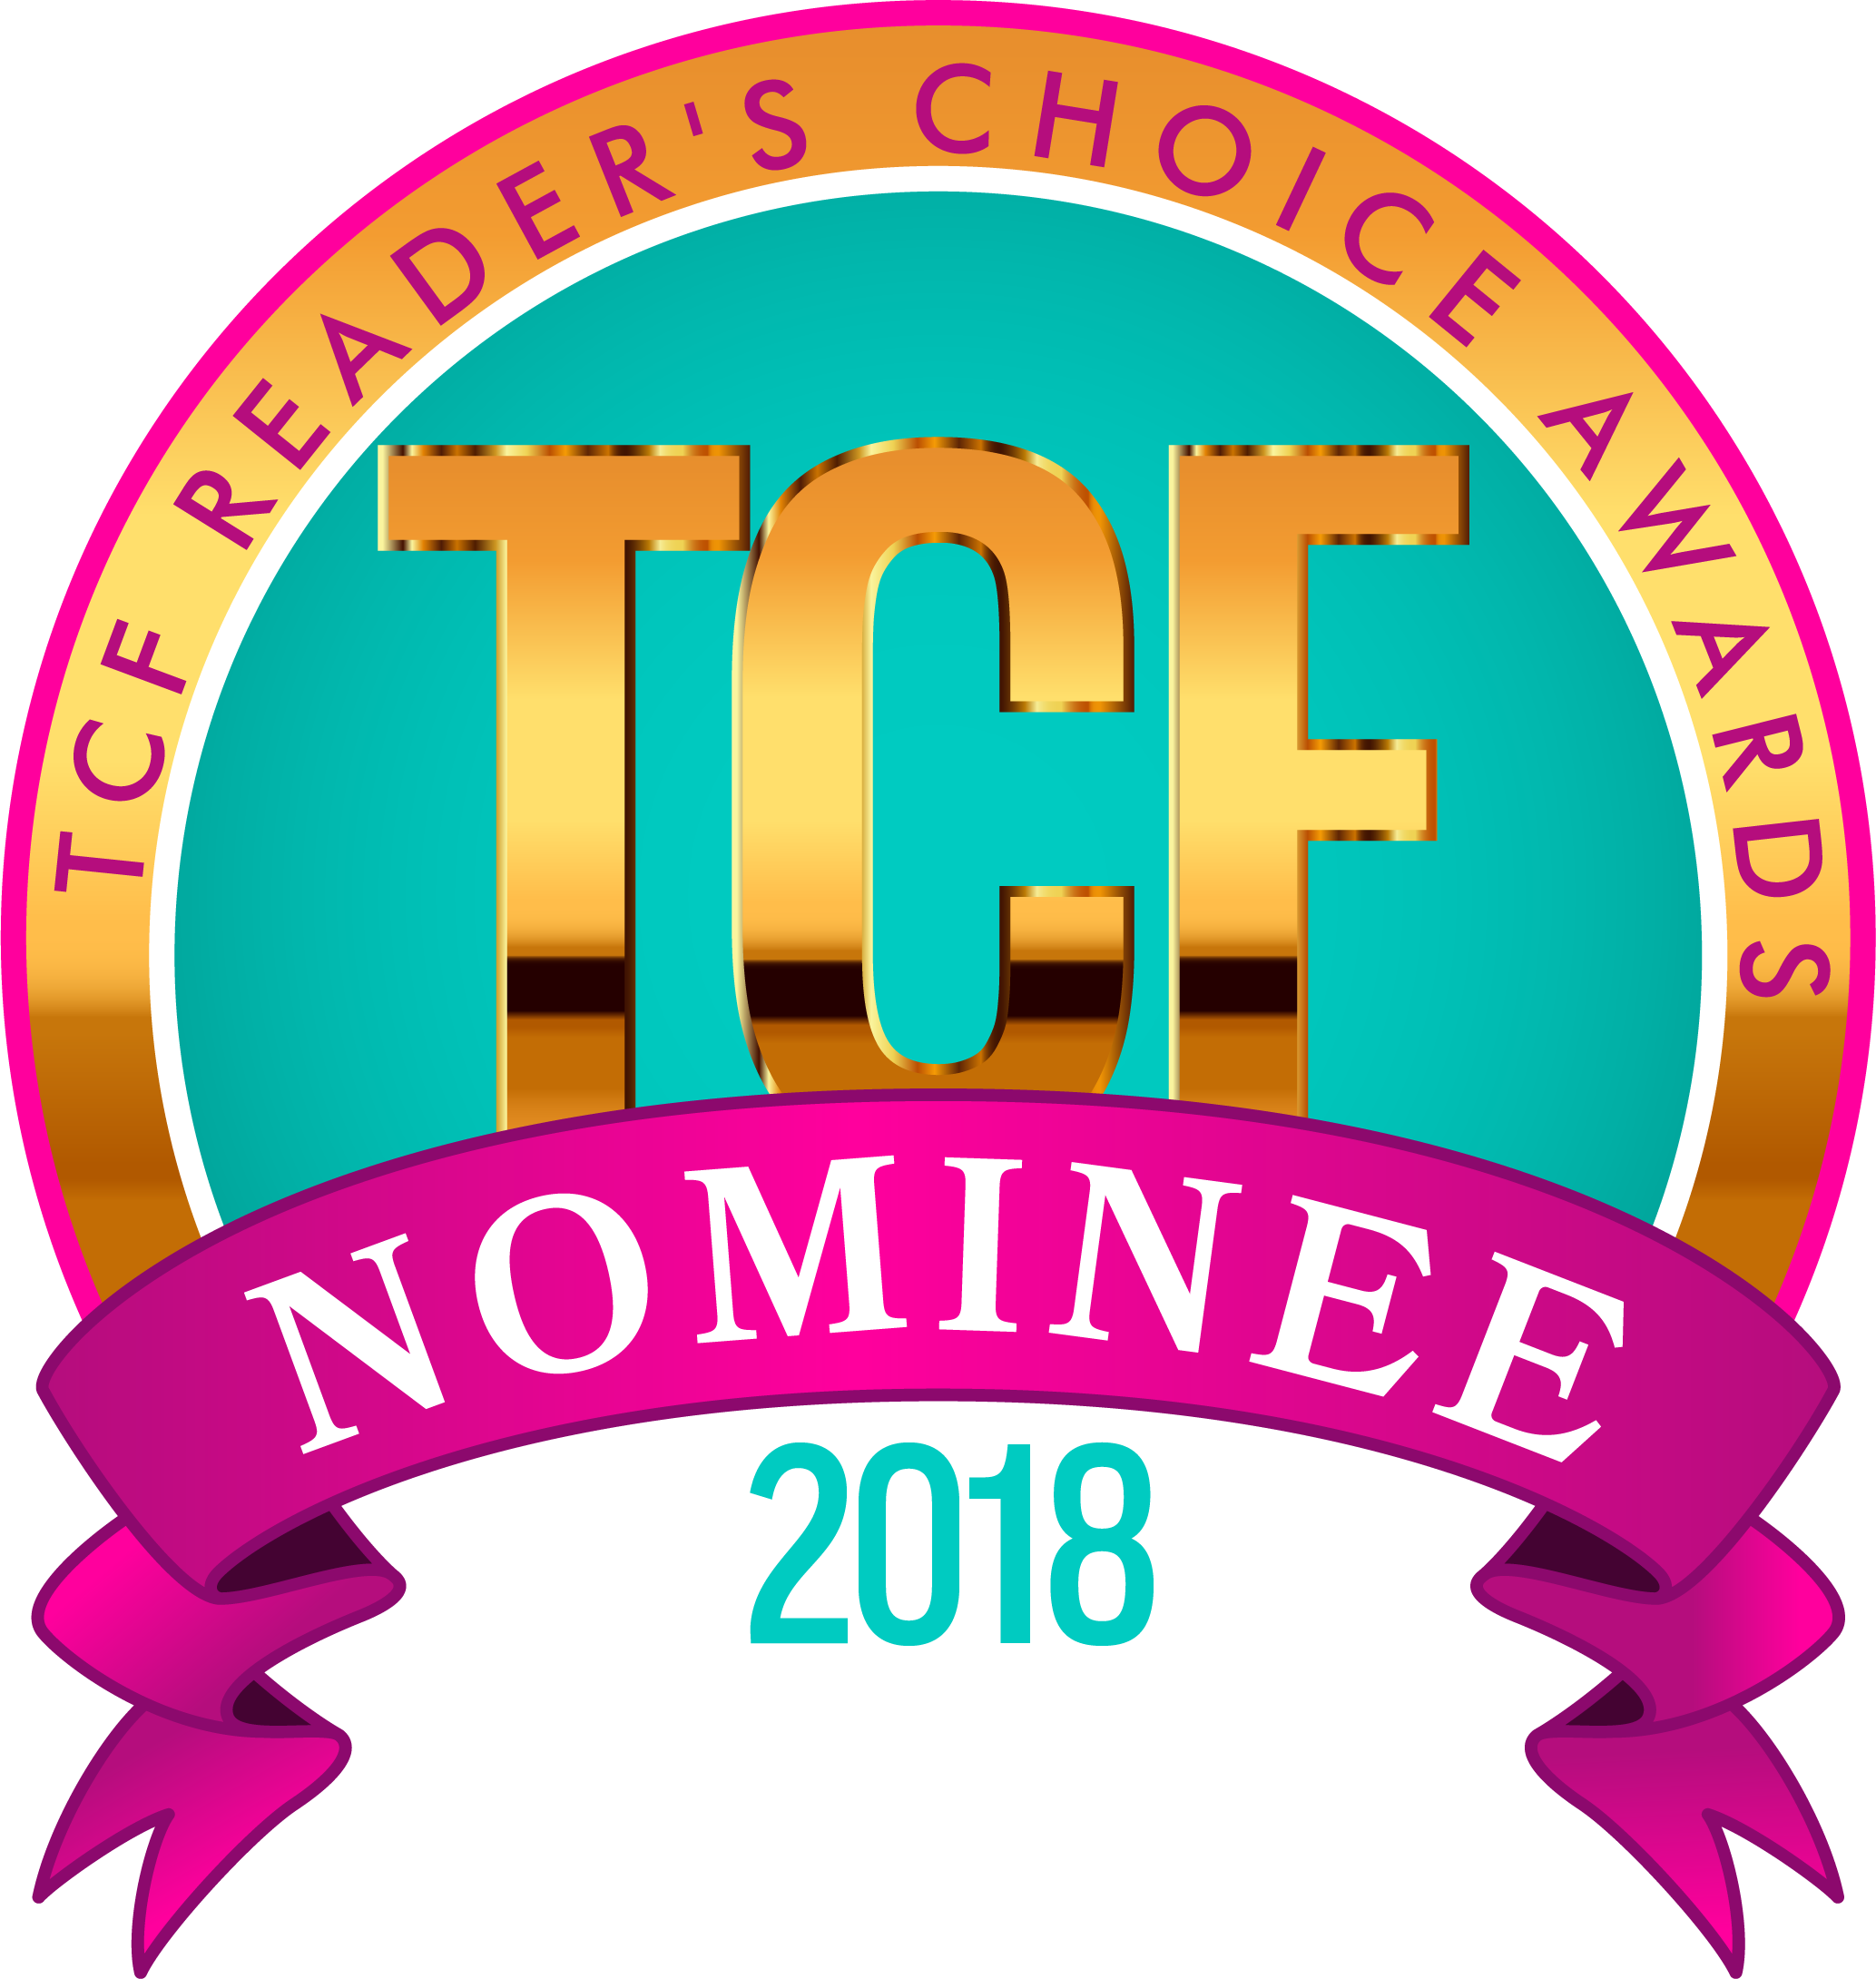 It's time to vote for your favorite plus size brands, boutiques and retailers in the 2018 TCFReader's Choice Awards! Vote now and let your voice be heard!